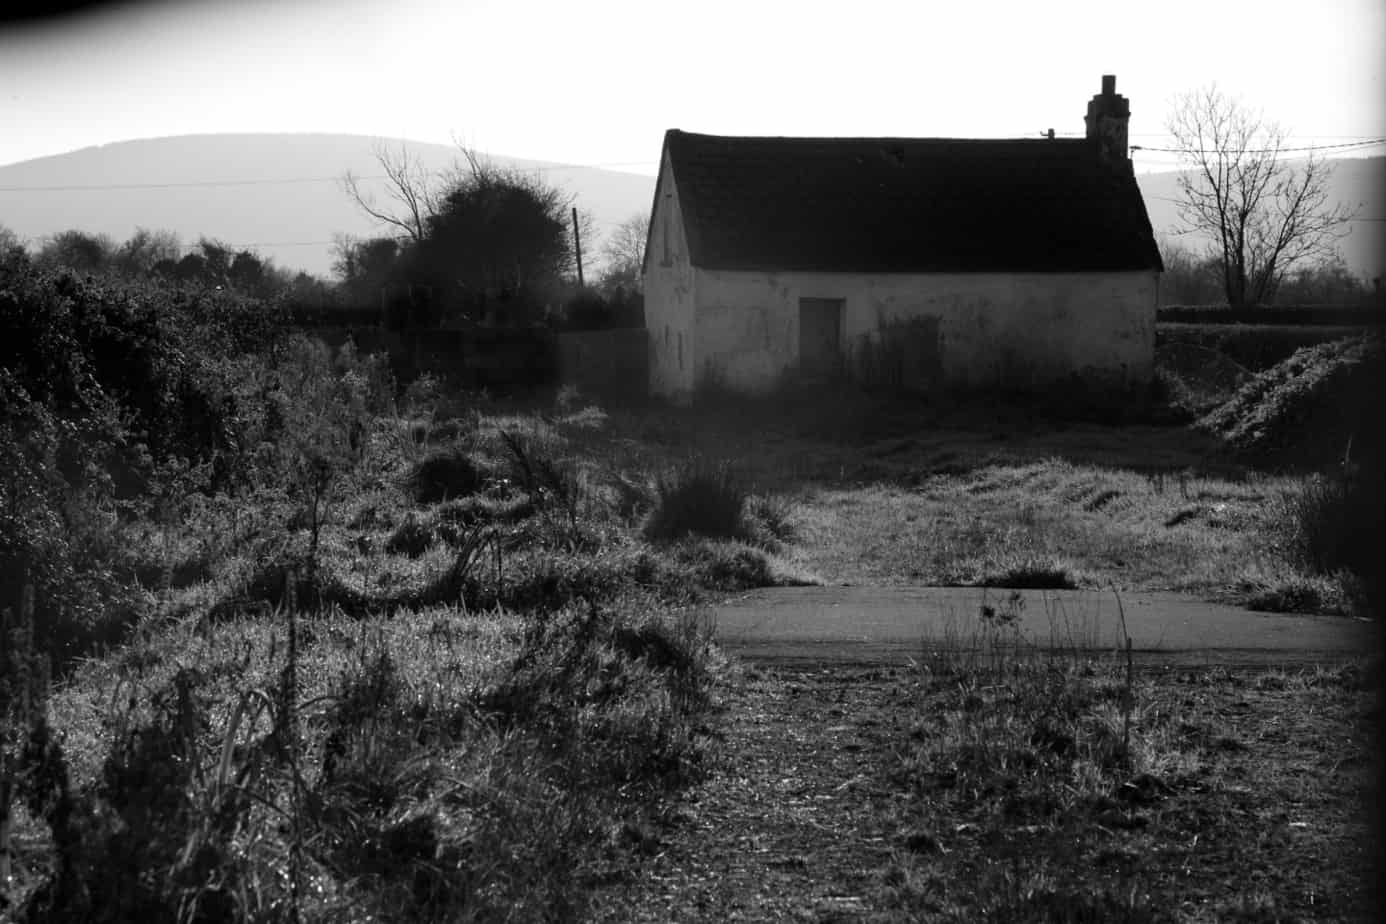 Death of an Irishwoman Brigid Halpin's cottage in Camas as it is today. The photograph is by Dermot Lynch.